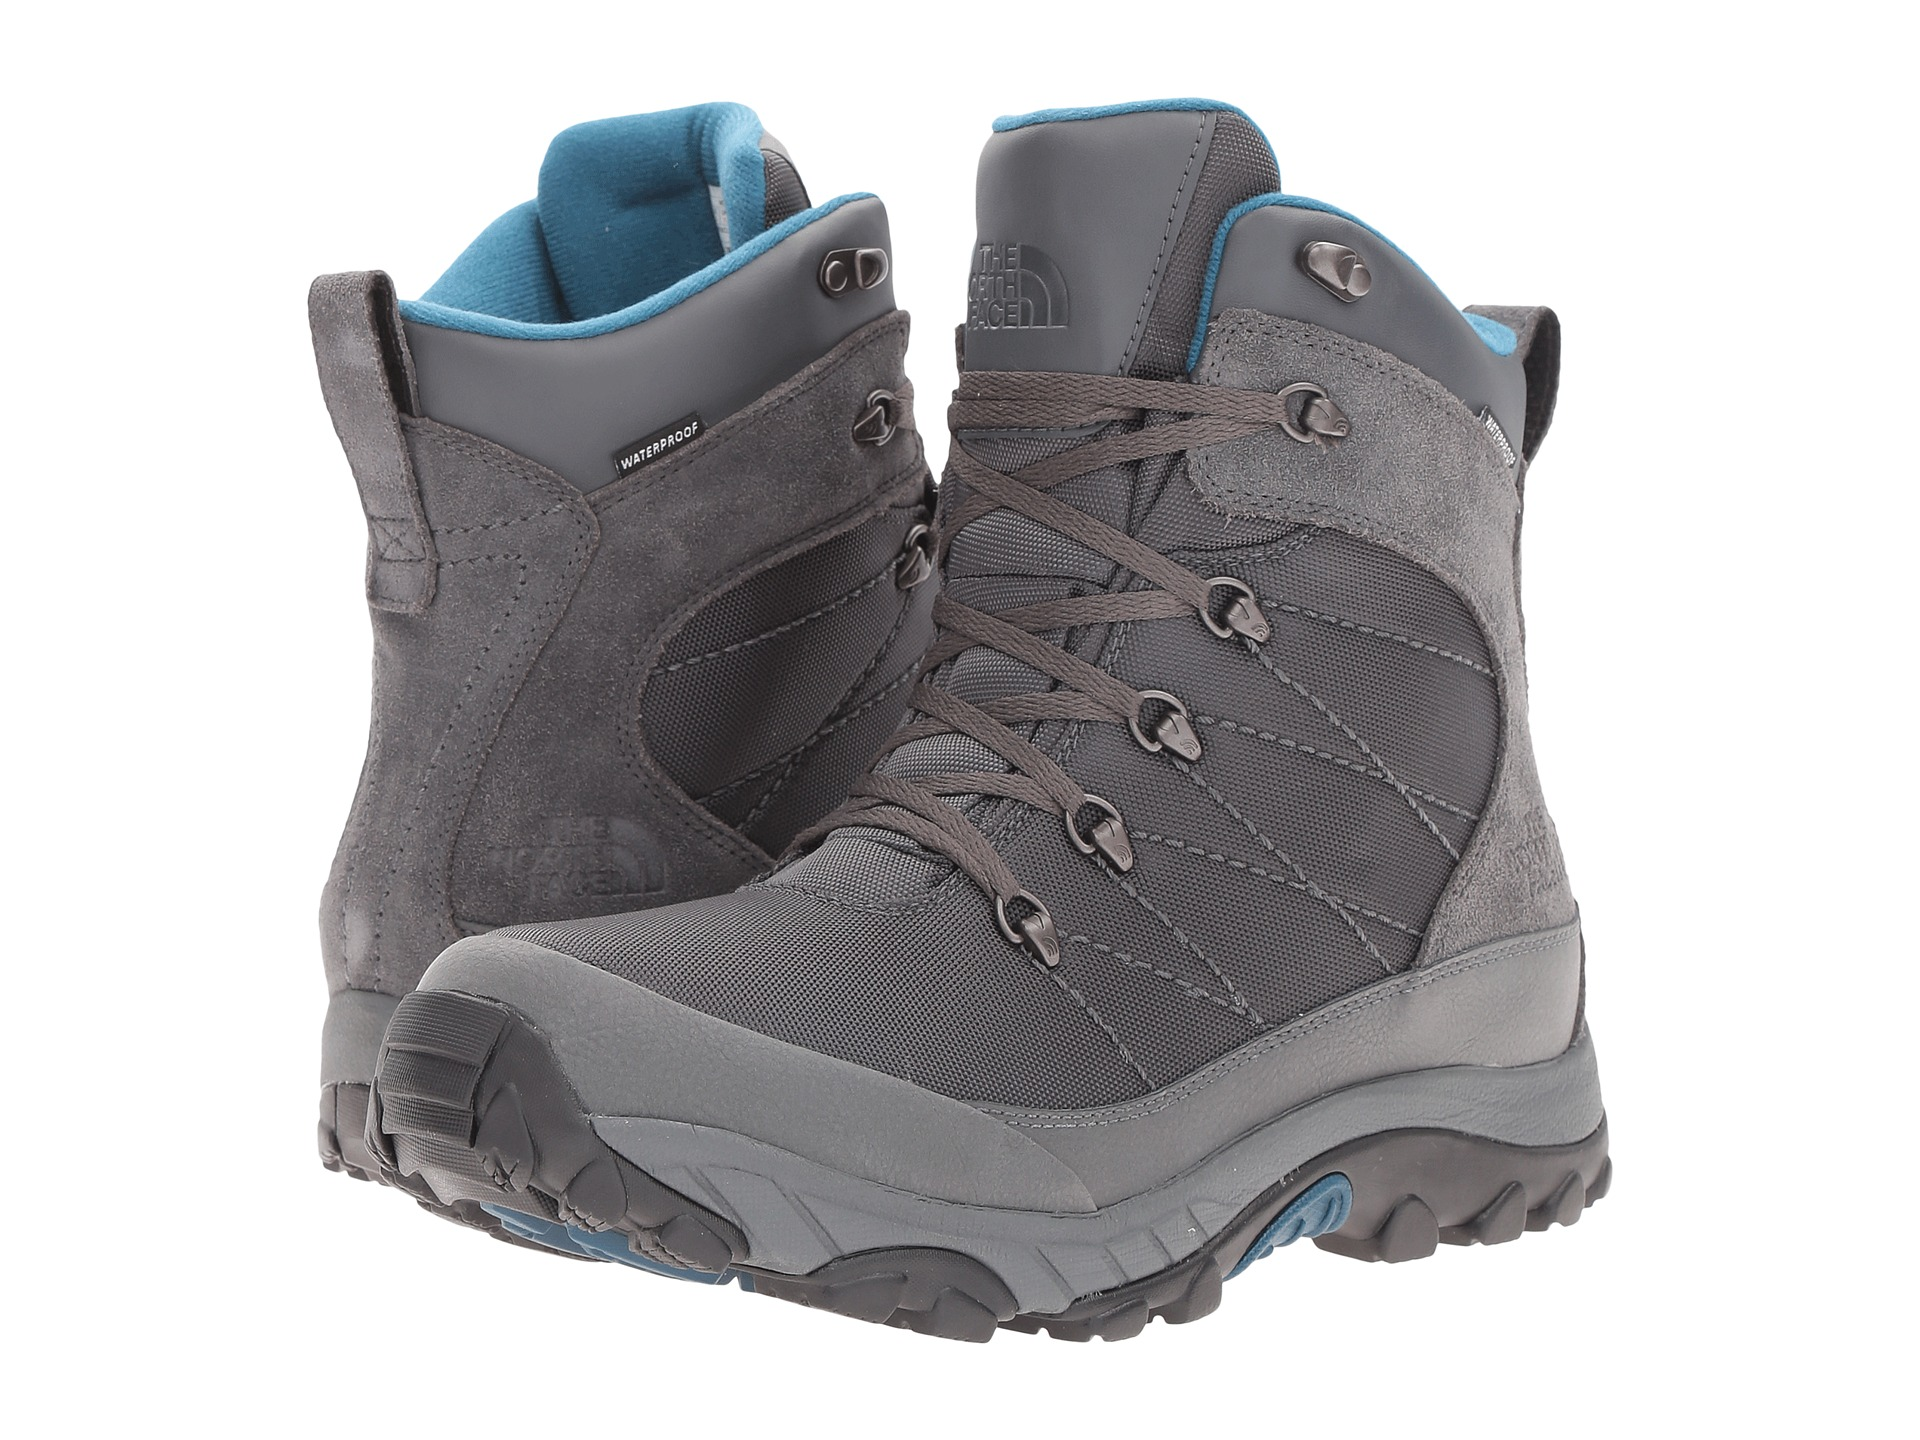 Boots Snow Boots Men | Shipped Free at Zappos